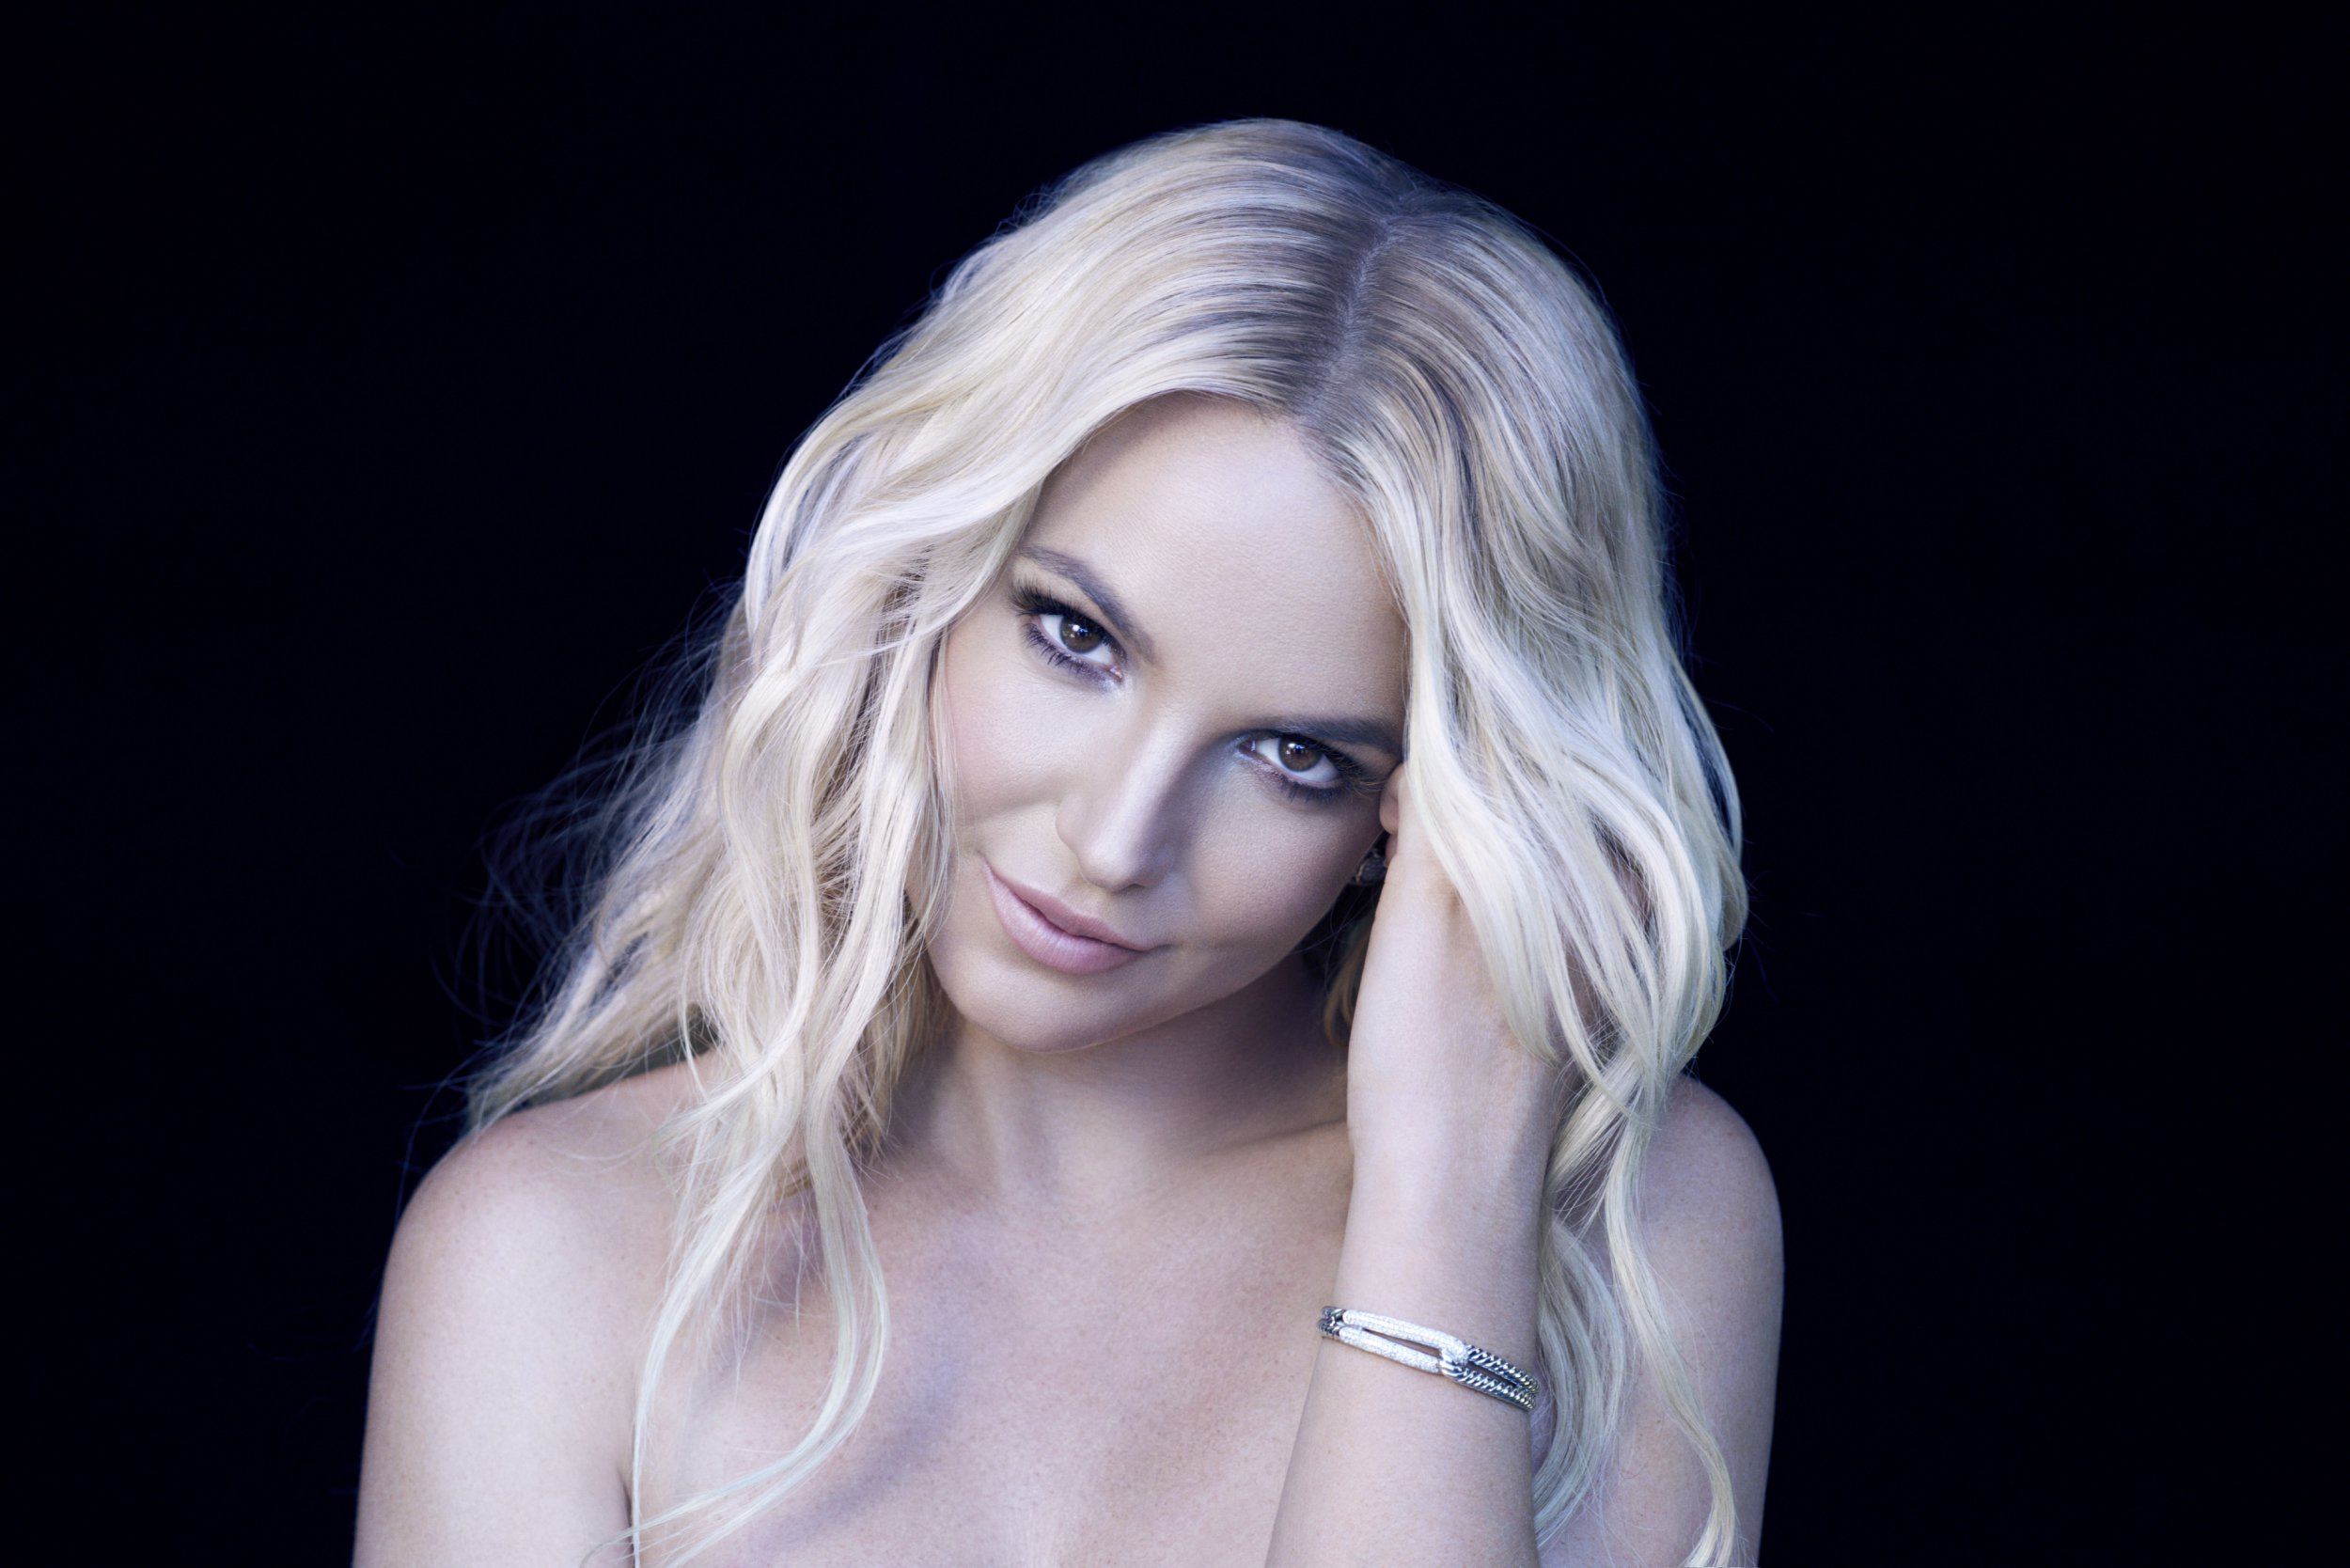 """UNSPECIFIED LOCATION - UNSPECIFIED DATE: In this handout photo provided by NBCUniversal, Britney Spears is pictured. Spears is the subject of the documentary """"I Am Britney Jean"""" which details her personal and professional life. (Photo by Michelangelo Di Battista/Sony/RCA via Getty Images)"""